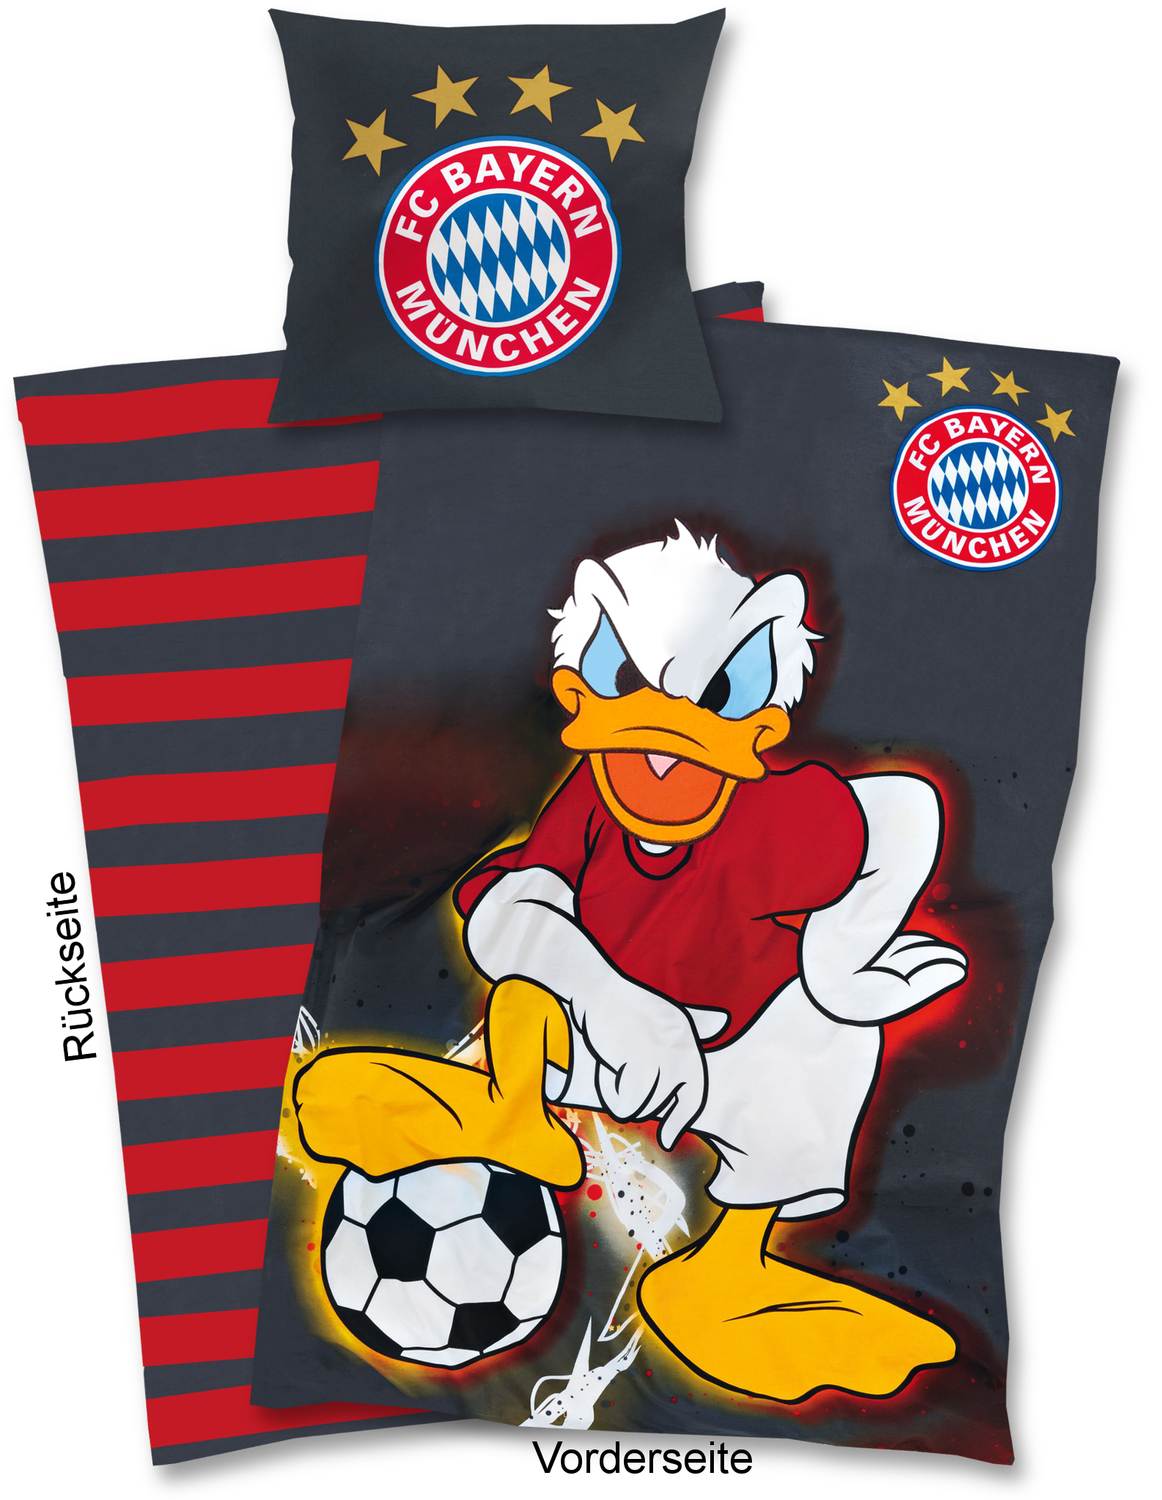 fc bayern m nchen bettw sche donald duck 135x200cm. Black Bedroom Furniture Sets. Home Design Ideas